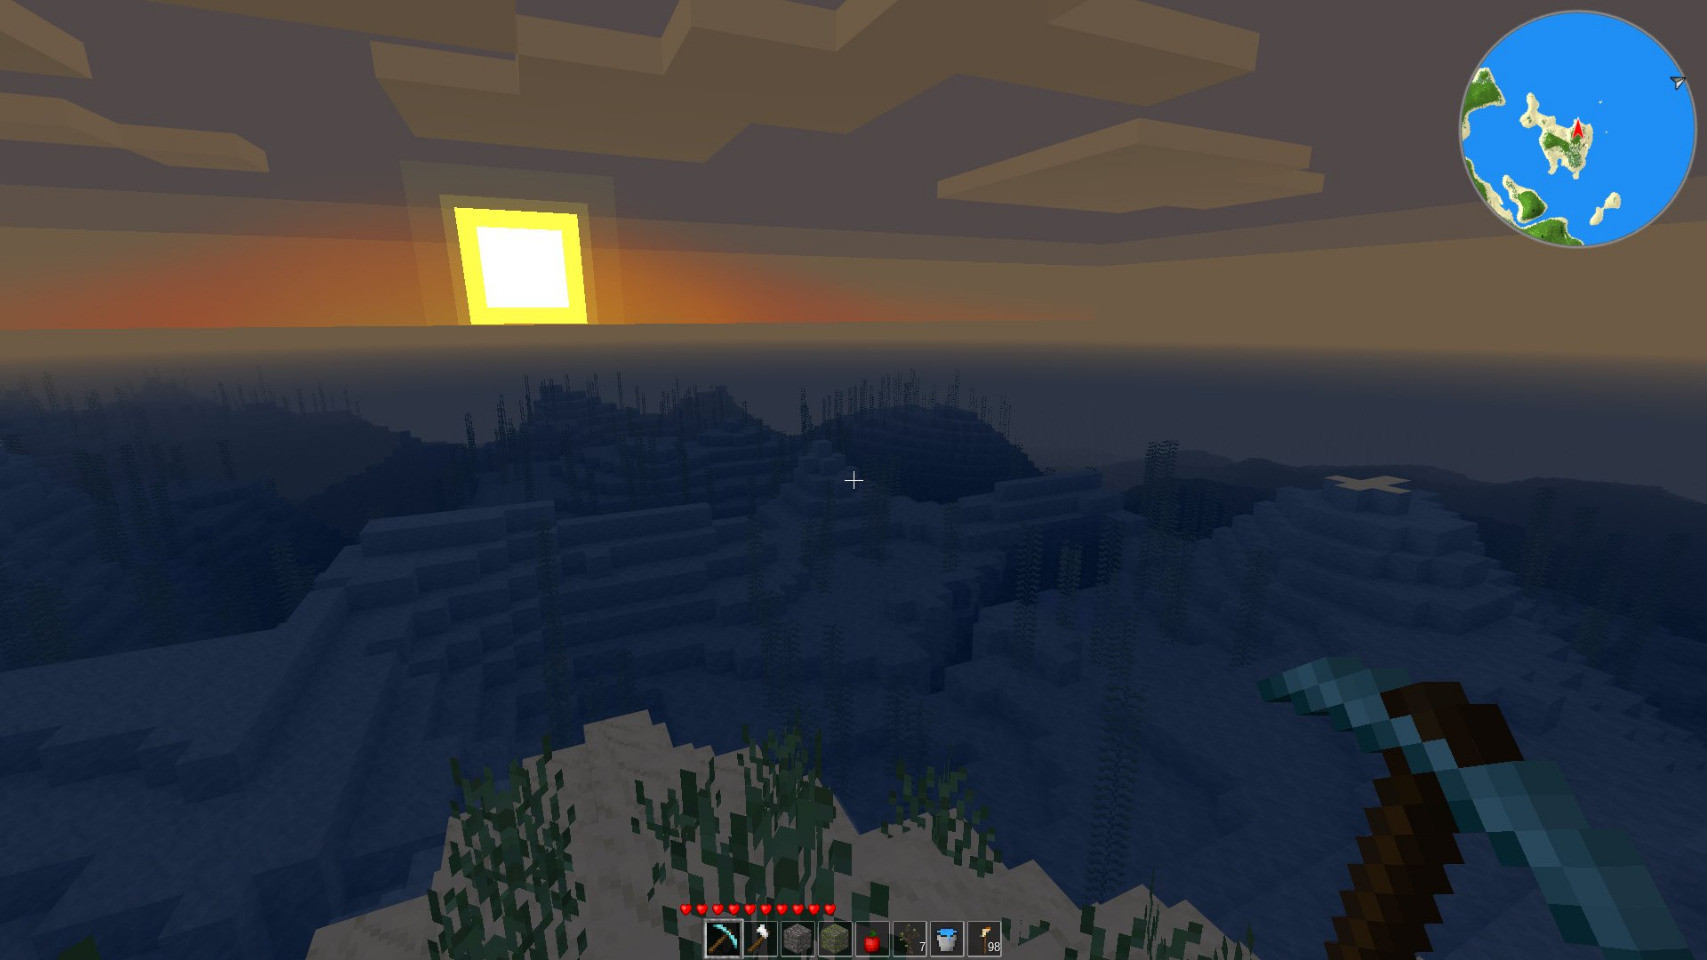 Screenshot of Minetest showing sun rising over a sea and landscape